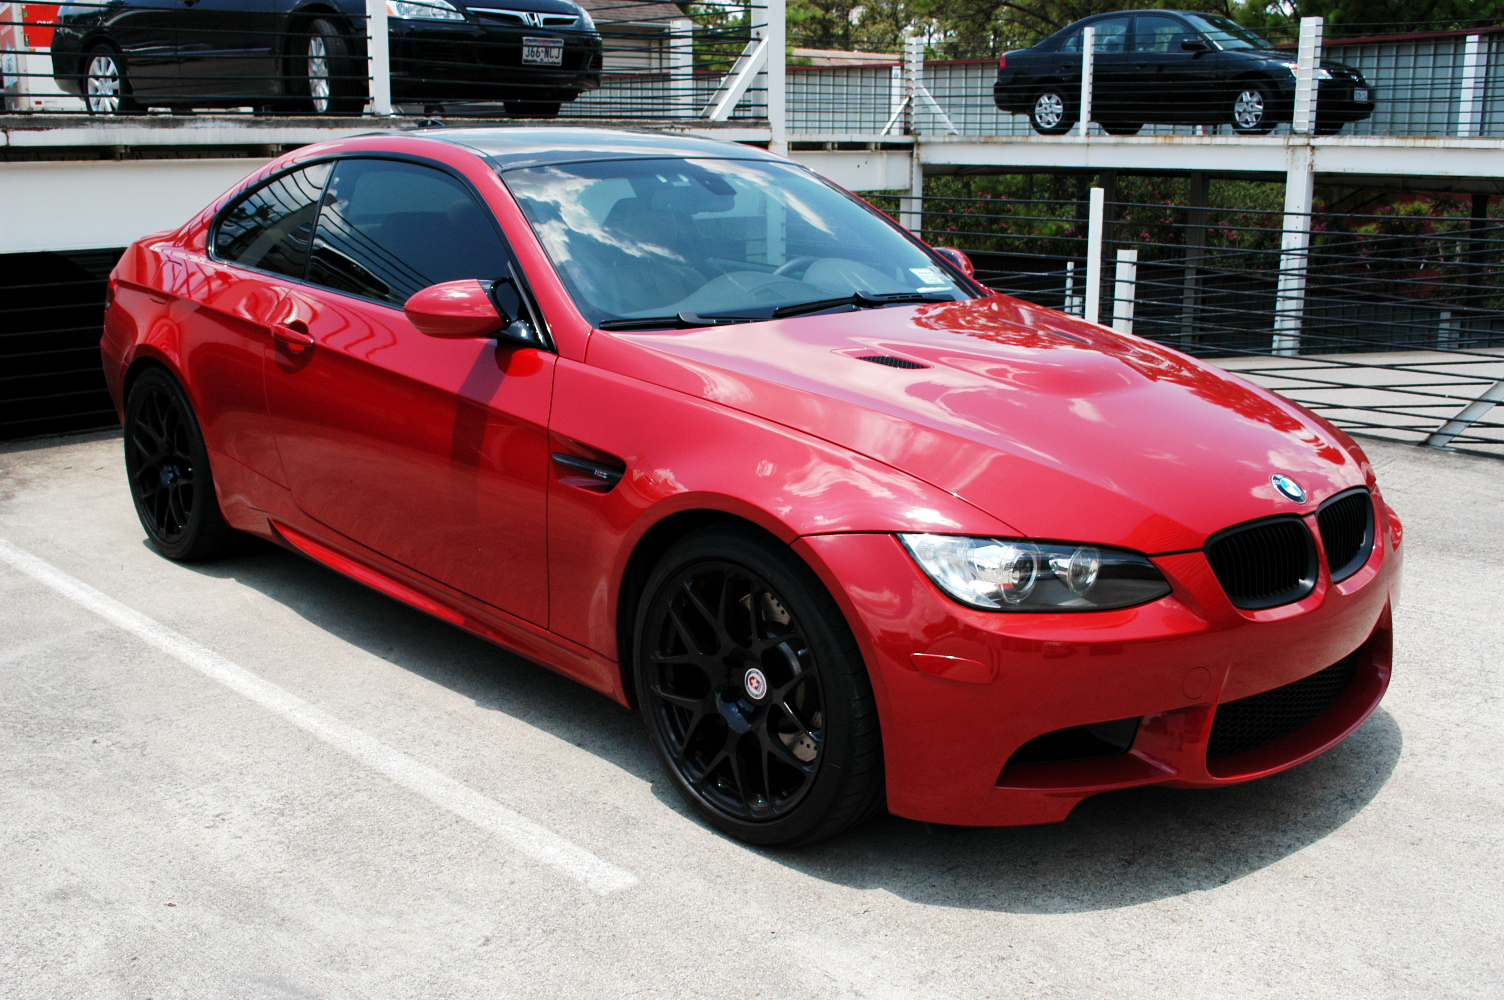 Fs 2008 E92 M3 Melbourne Red Bamboo Beige Cf Roof Mr